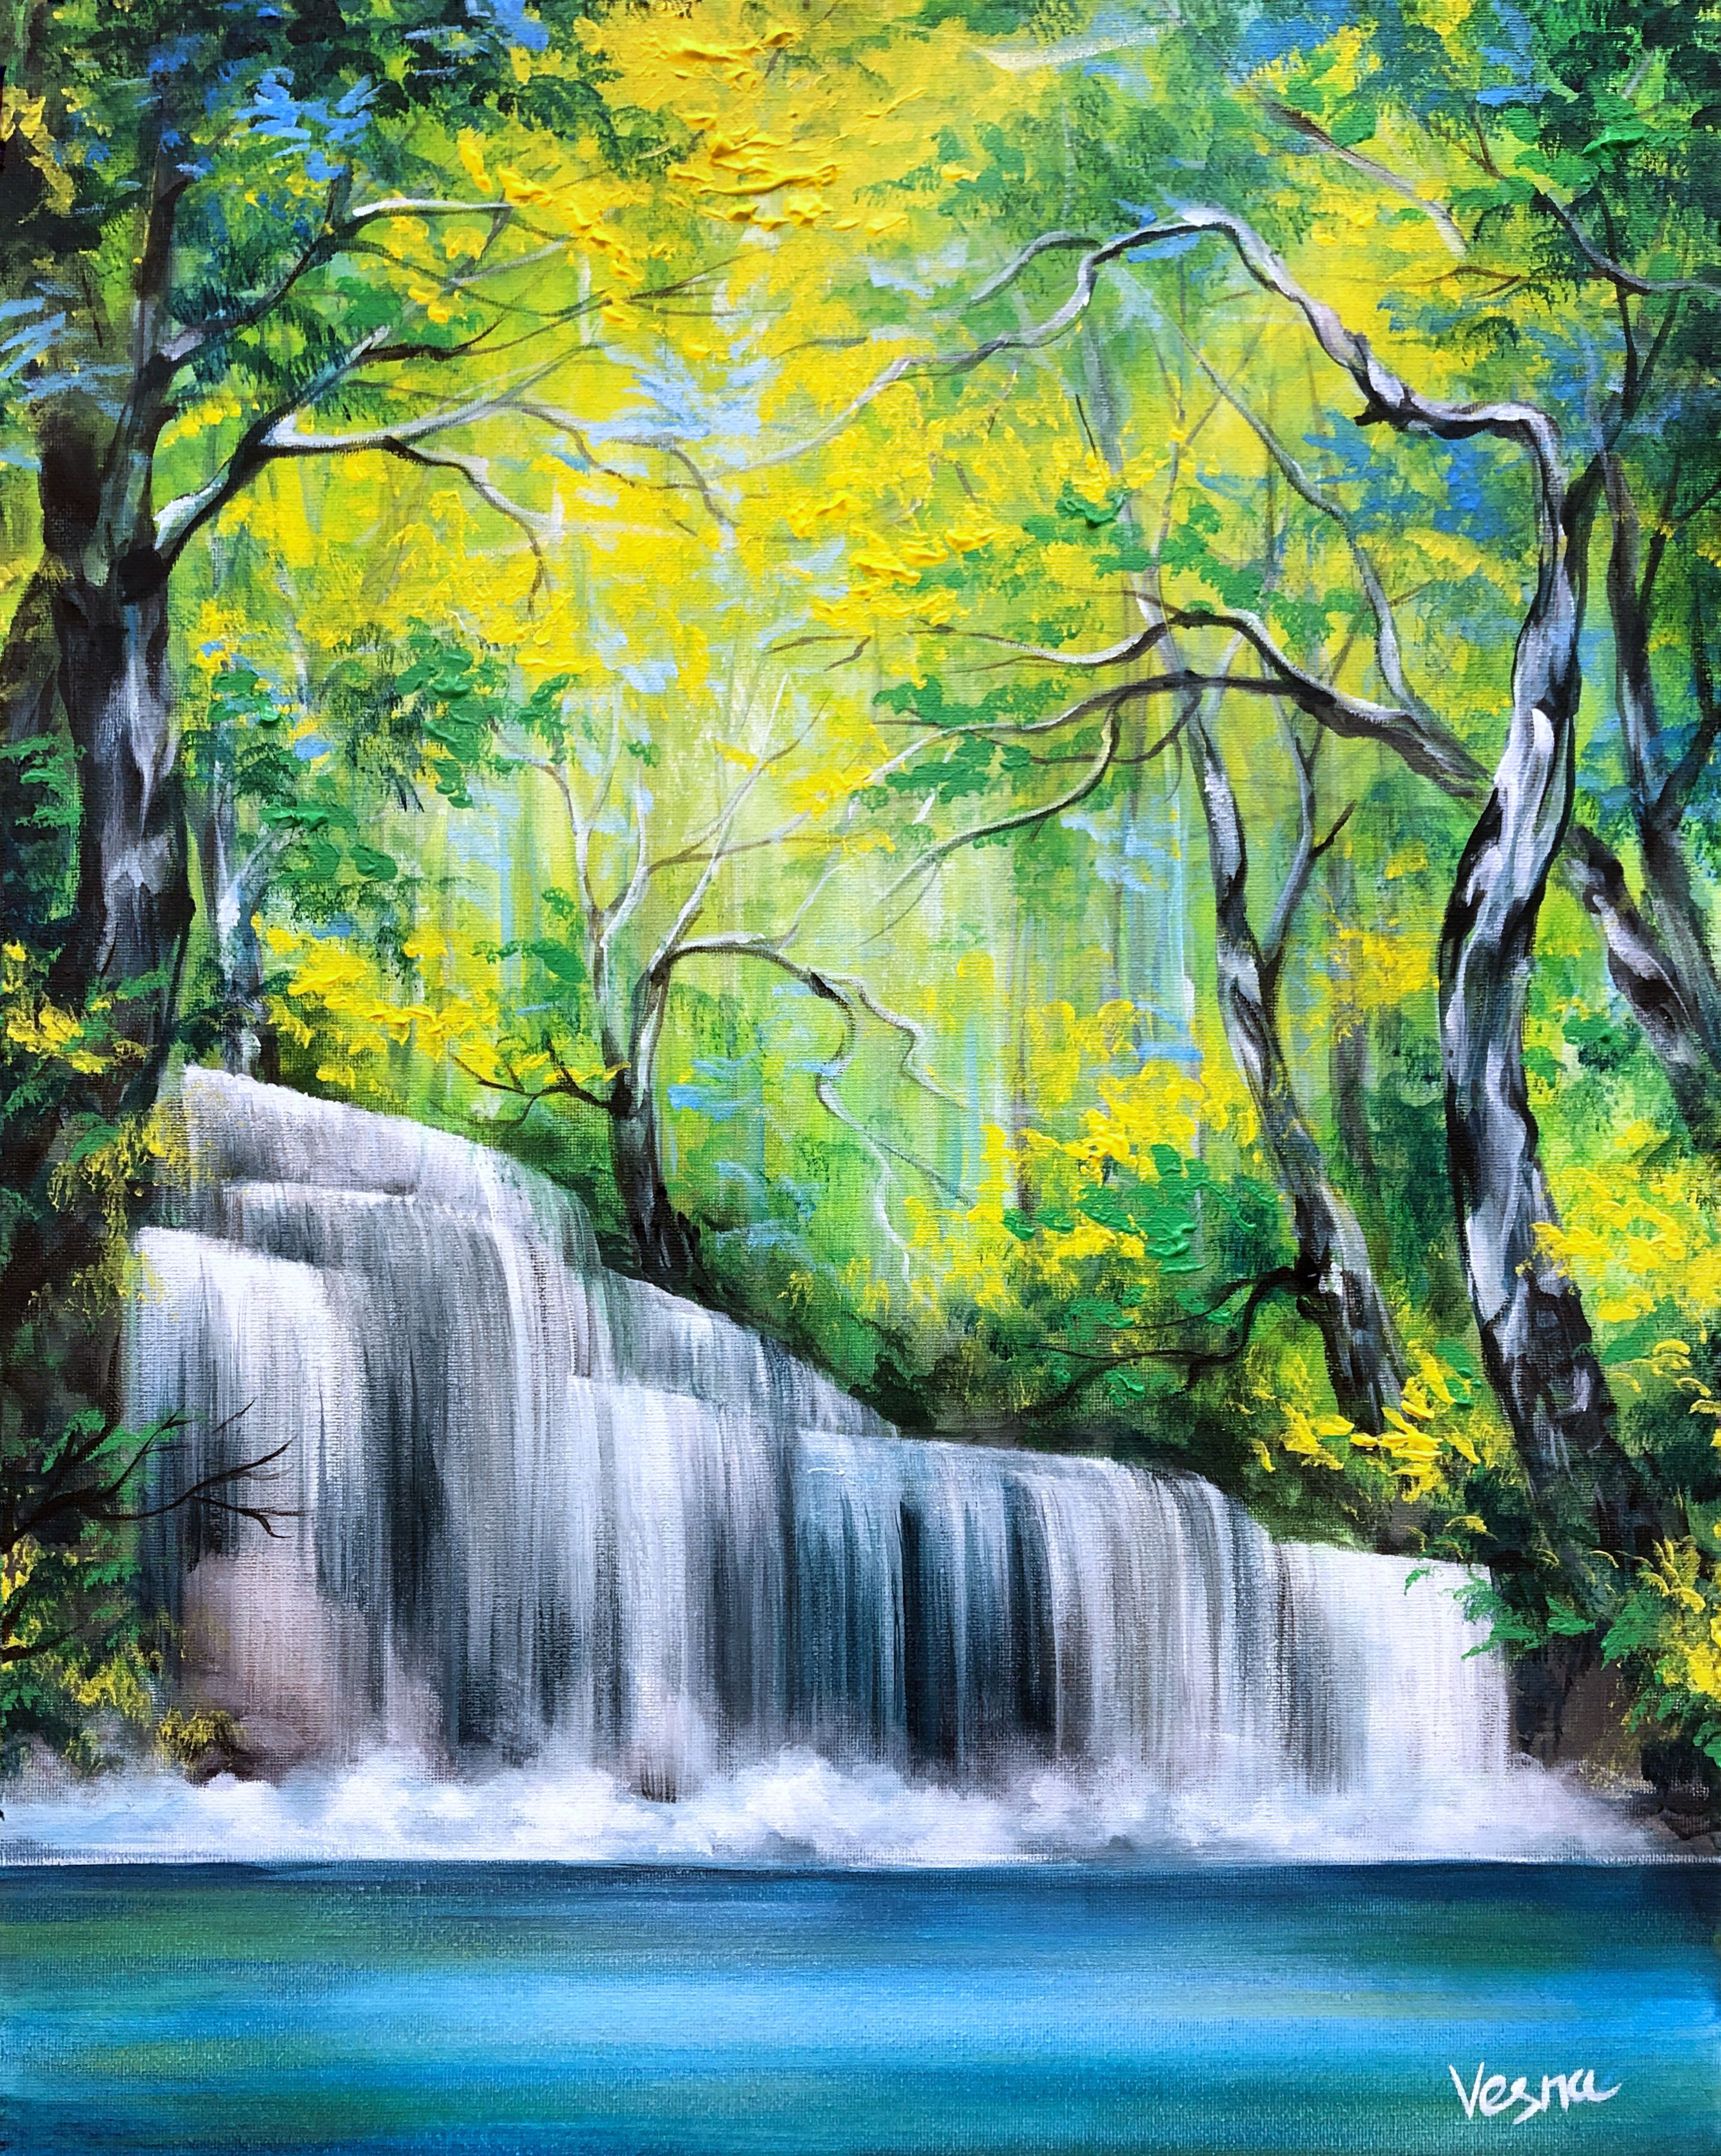 Full Of Life 20 X16 X0 5 Acrylic On Canvas Https Etsy Me 2z0phxc Waterfall Paintings Landscape Paintings Acrylic Landscape Art